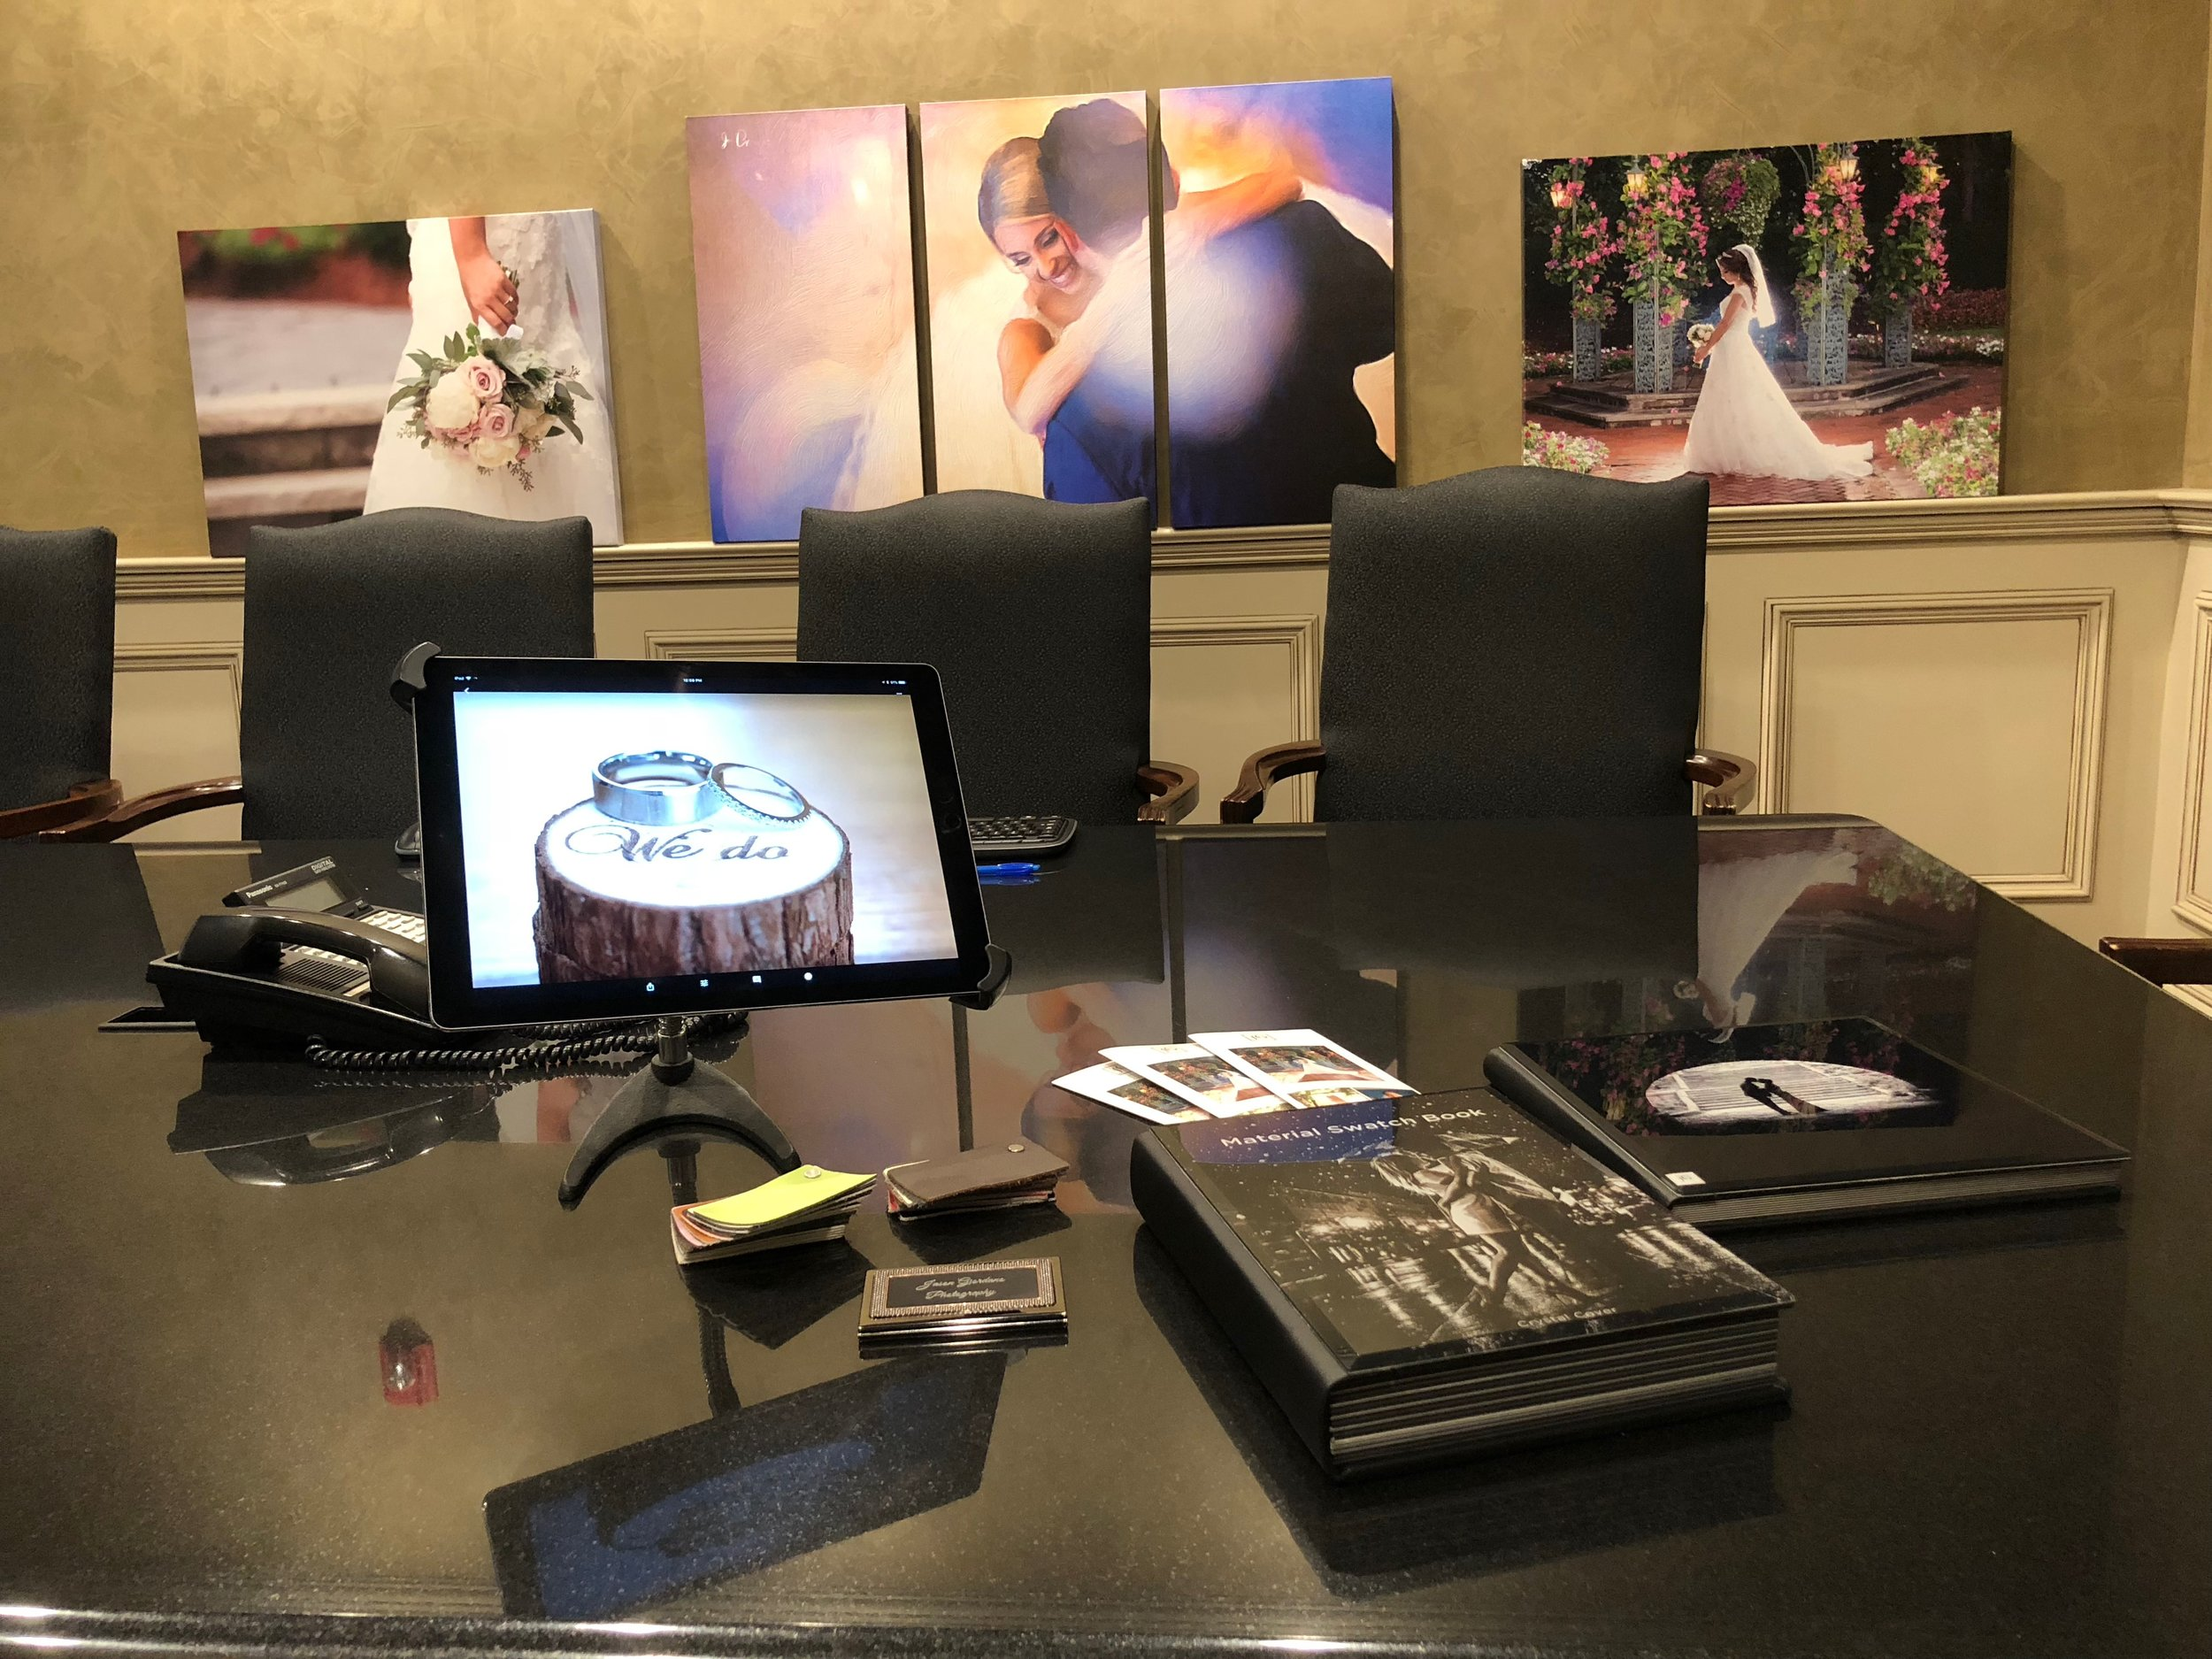 Come see our wedding photography portfolio. Visit our luxurious conference room. By appointment only. We would be happy to go over many wedding picture ideas and the many options available to you.